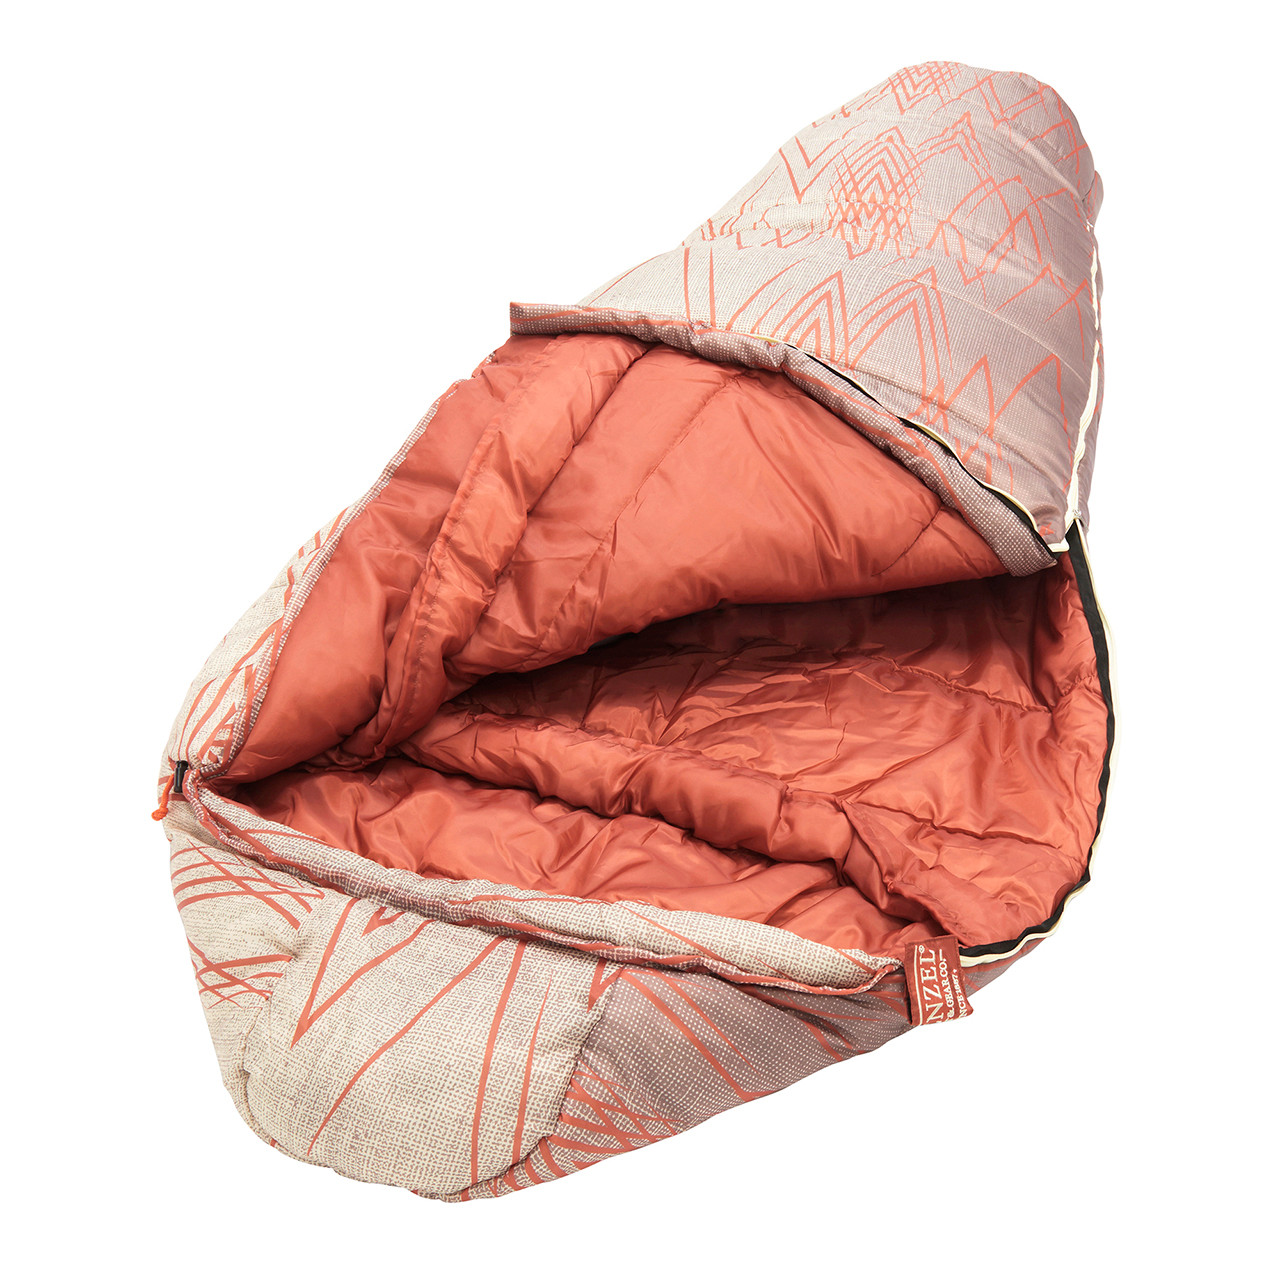 Close up view of the head portion of the Wenzel Wyatt sleeping bag laying flat with the corner partially unzipped and folded over showing the orange interior of the sleeping bag